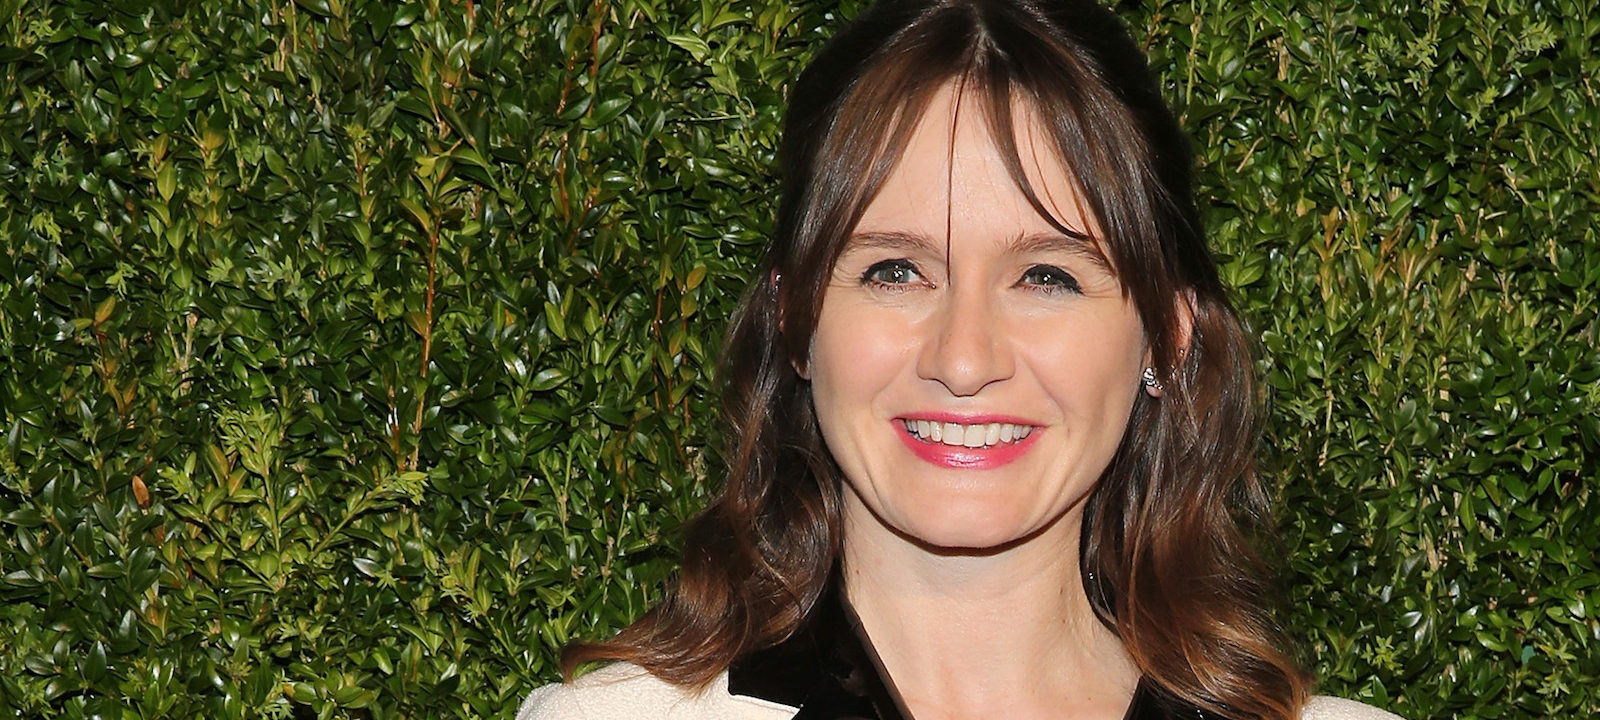 Actress Emily Mortimer attends the 11th Annual Chanel Tribeca Film Festival Artists Dinner at Balthazar on April 18, 2016 in New York City.